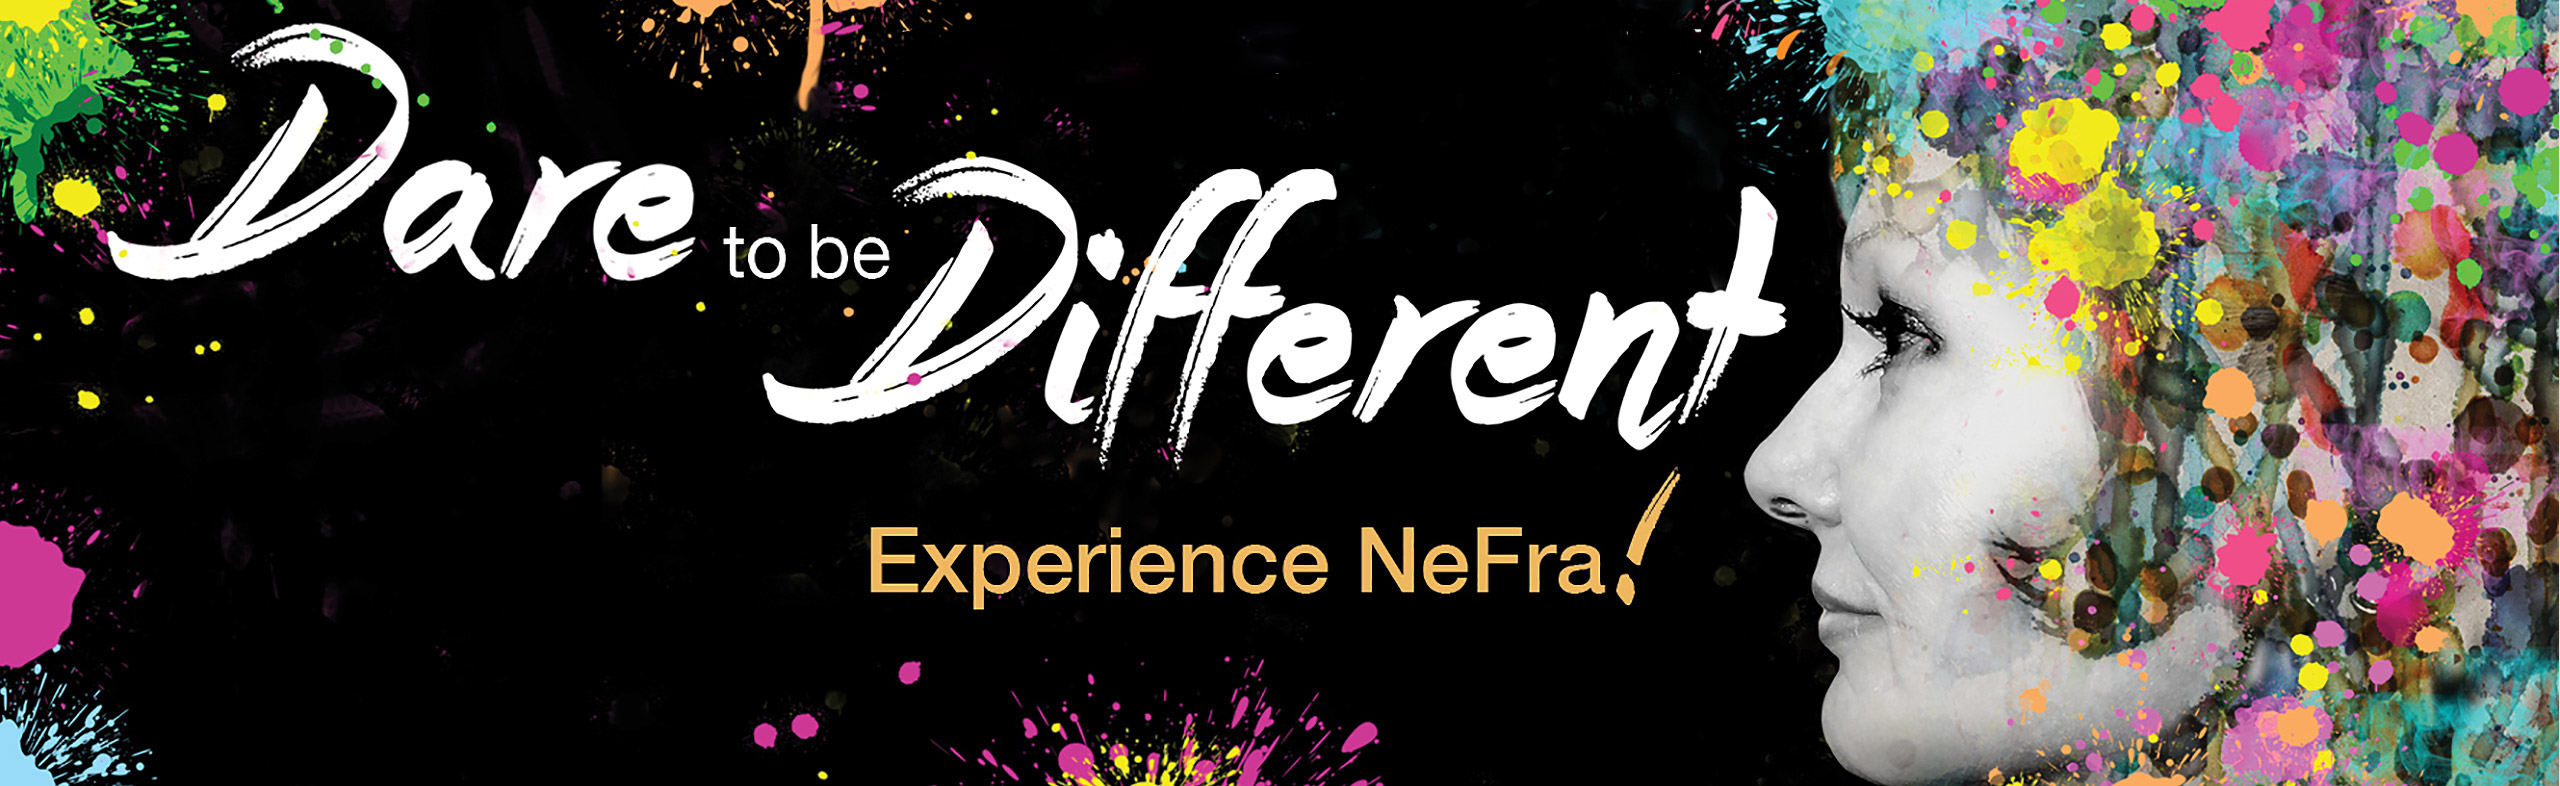 Nefra-Full-Background-Slideshow_DareToBeDifferent_v2